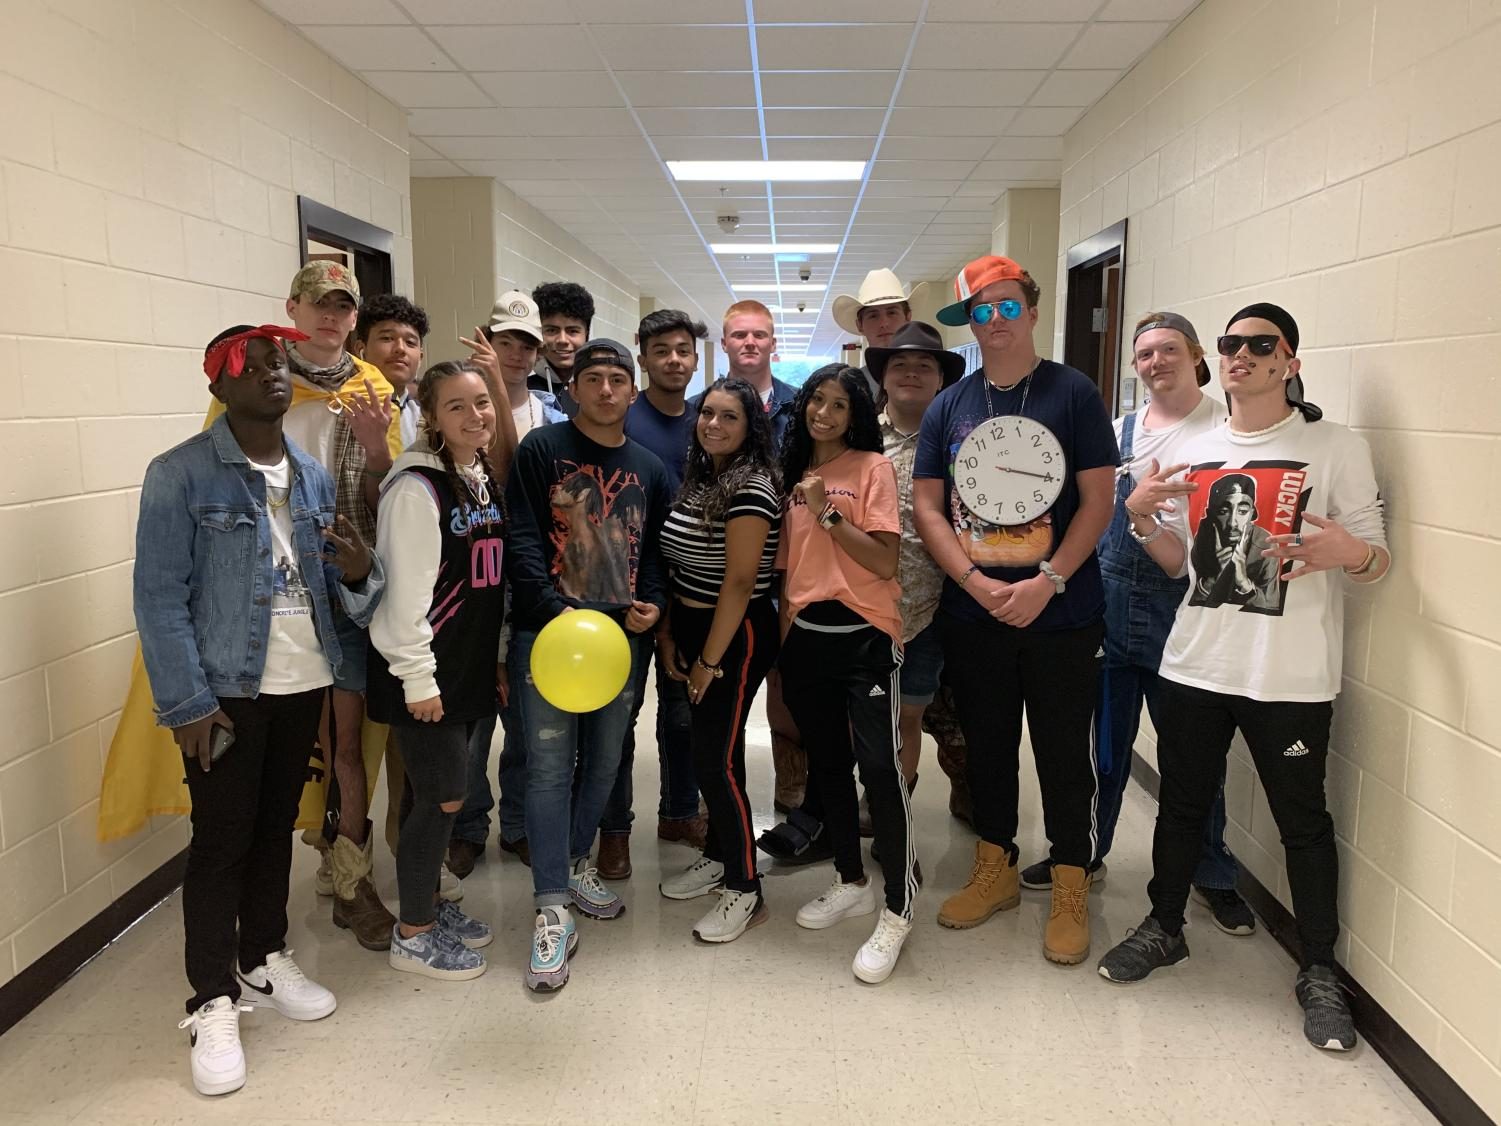 Rawlins' and Gollner's classes join forces